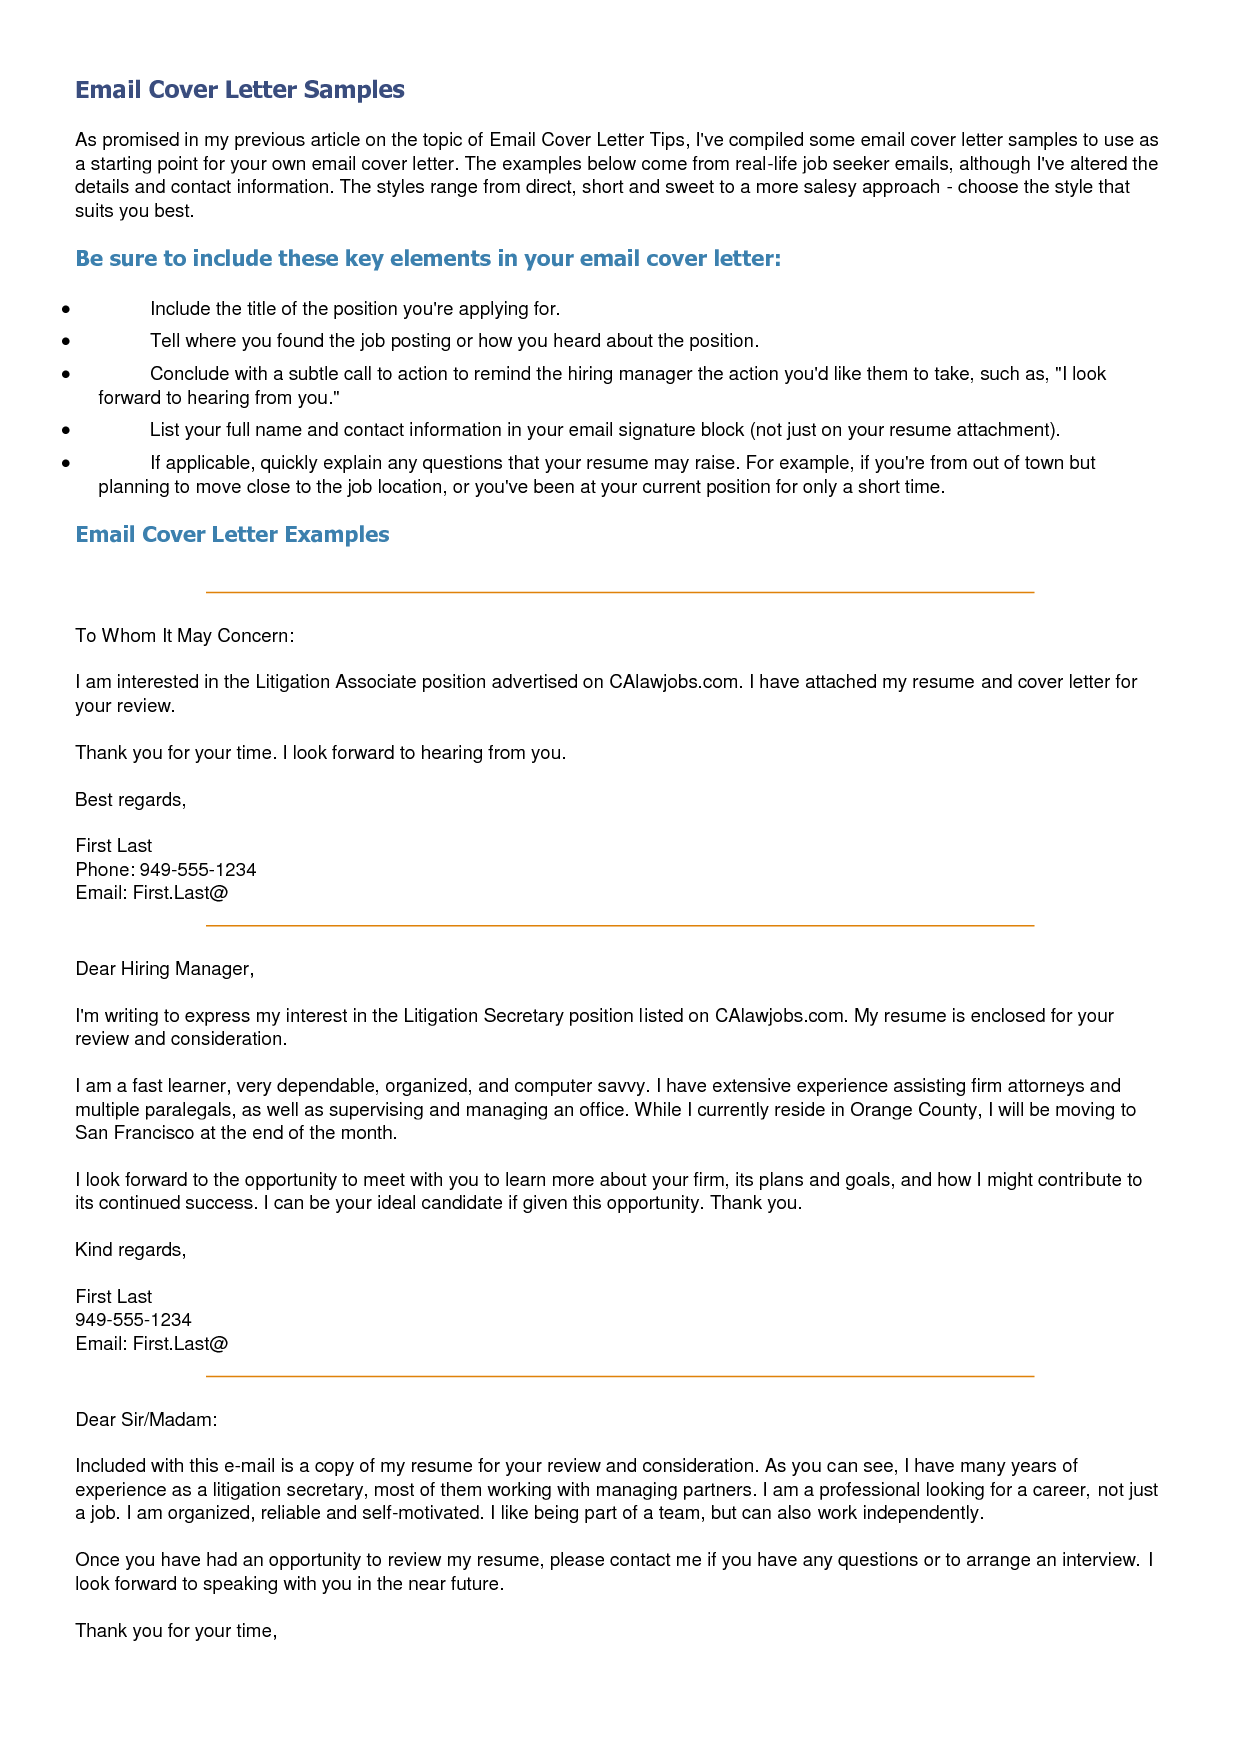 email cover letter sample Email Cover Letter Samples ...